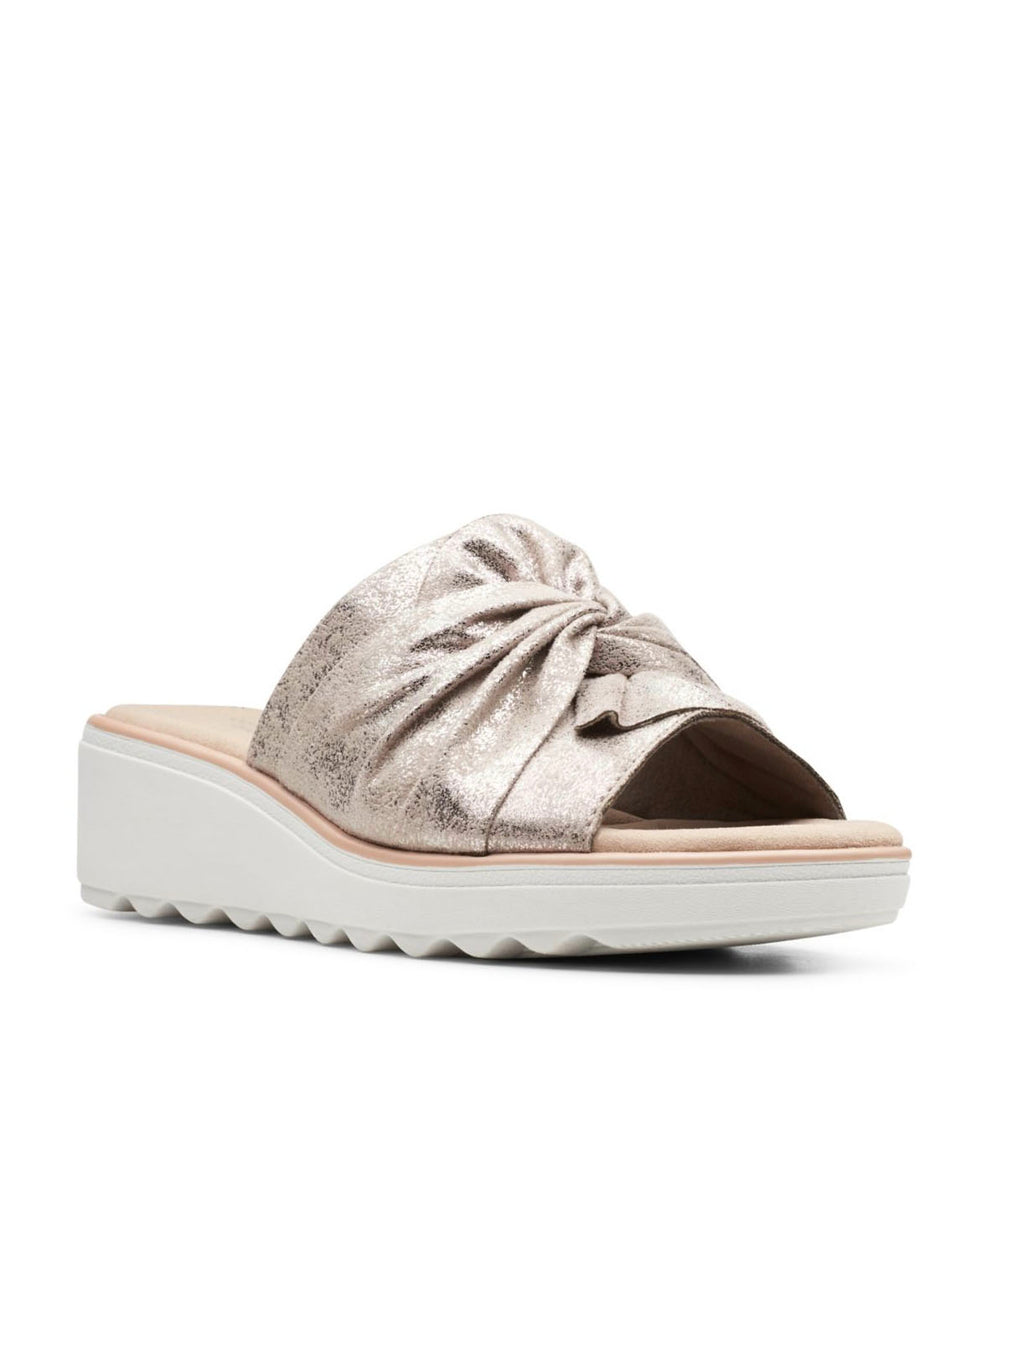 Clarks Jillian Leap Sandal in Pewter